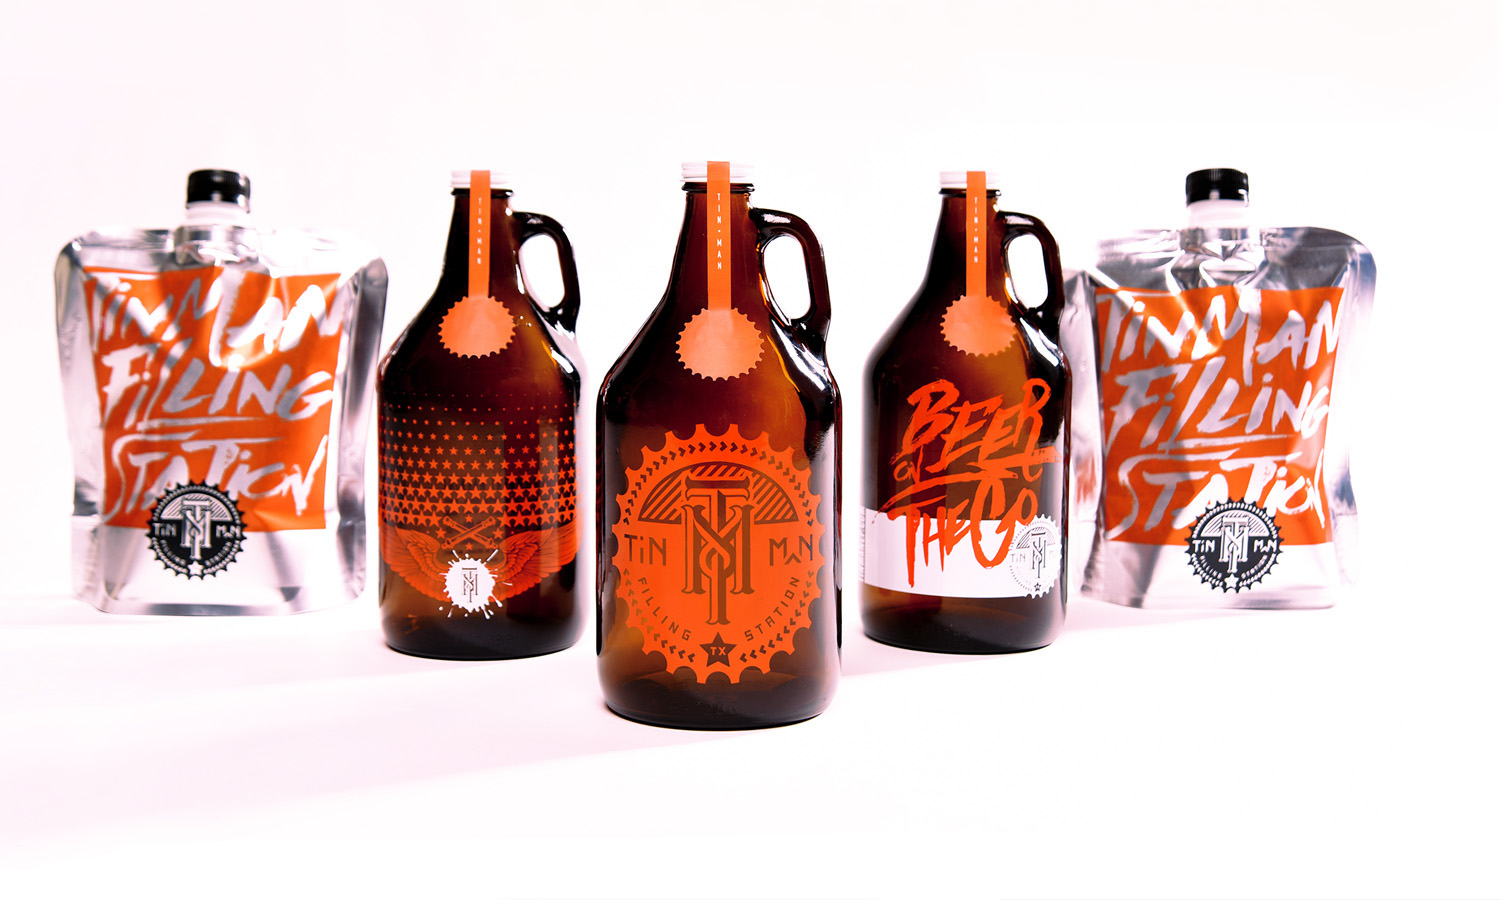 Tin Man filling station craft beer branding and packaging by EME Design Studio in Texas